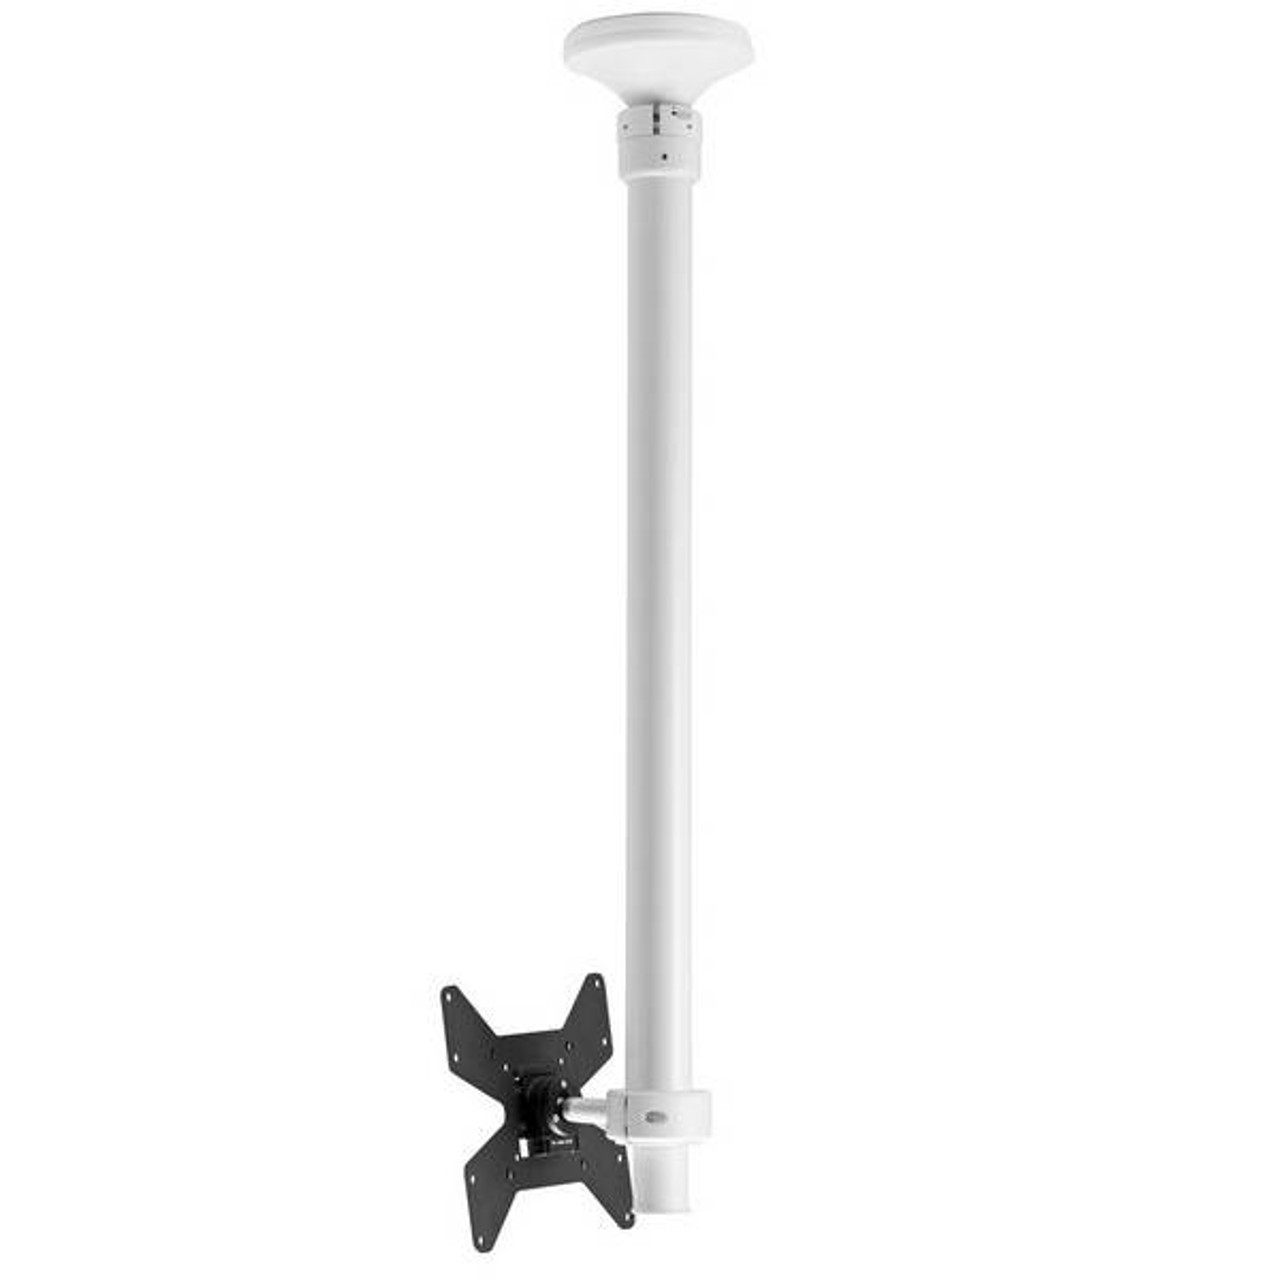 Image for Atdec TH-1040-CTS Telehook LCD Ceiling Mount for10in-40in	- WHITE CX Computer Superstore